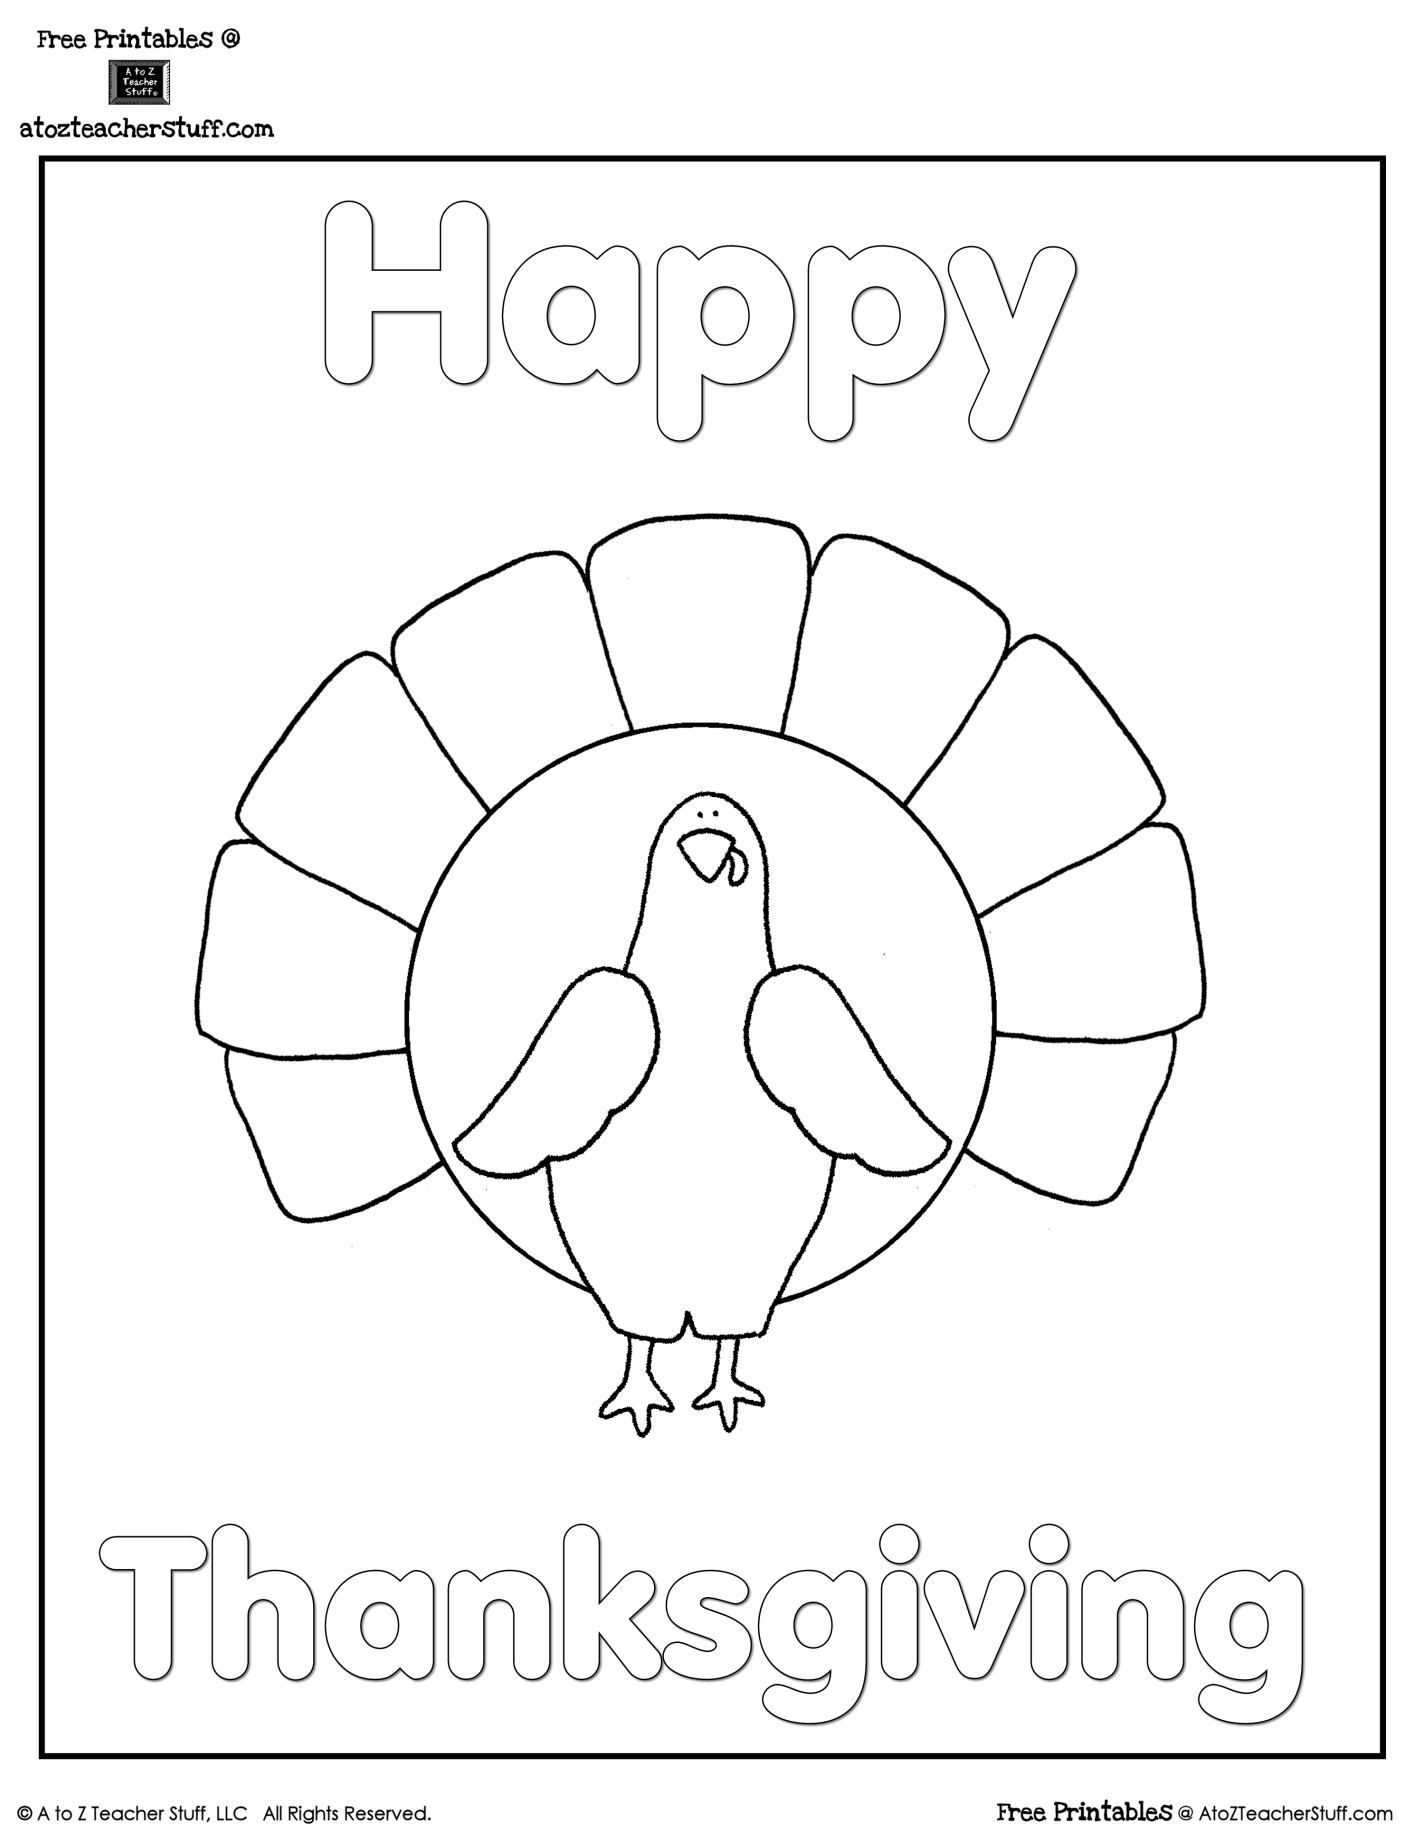 Thanksgiving Day Coloring Pages Free 27 Turkey Day Coloring Pages Thanksgiving Zentangle Turkey Elena